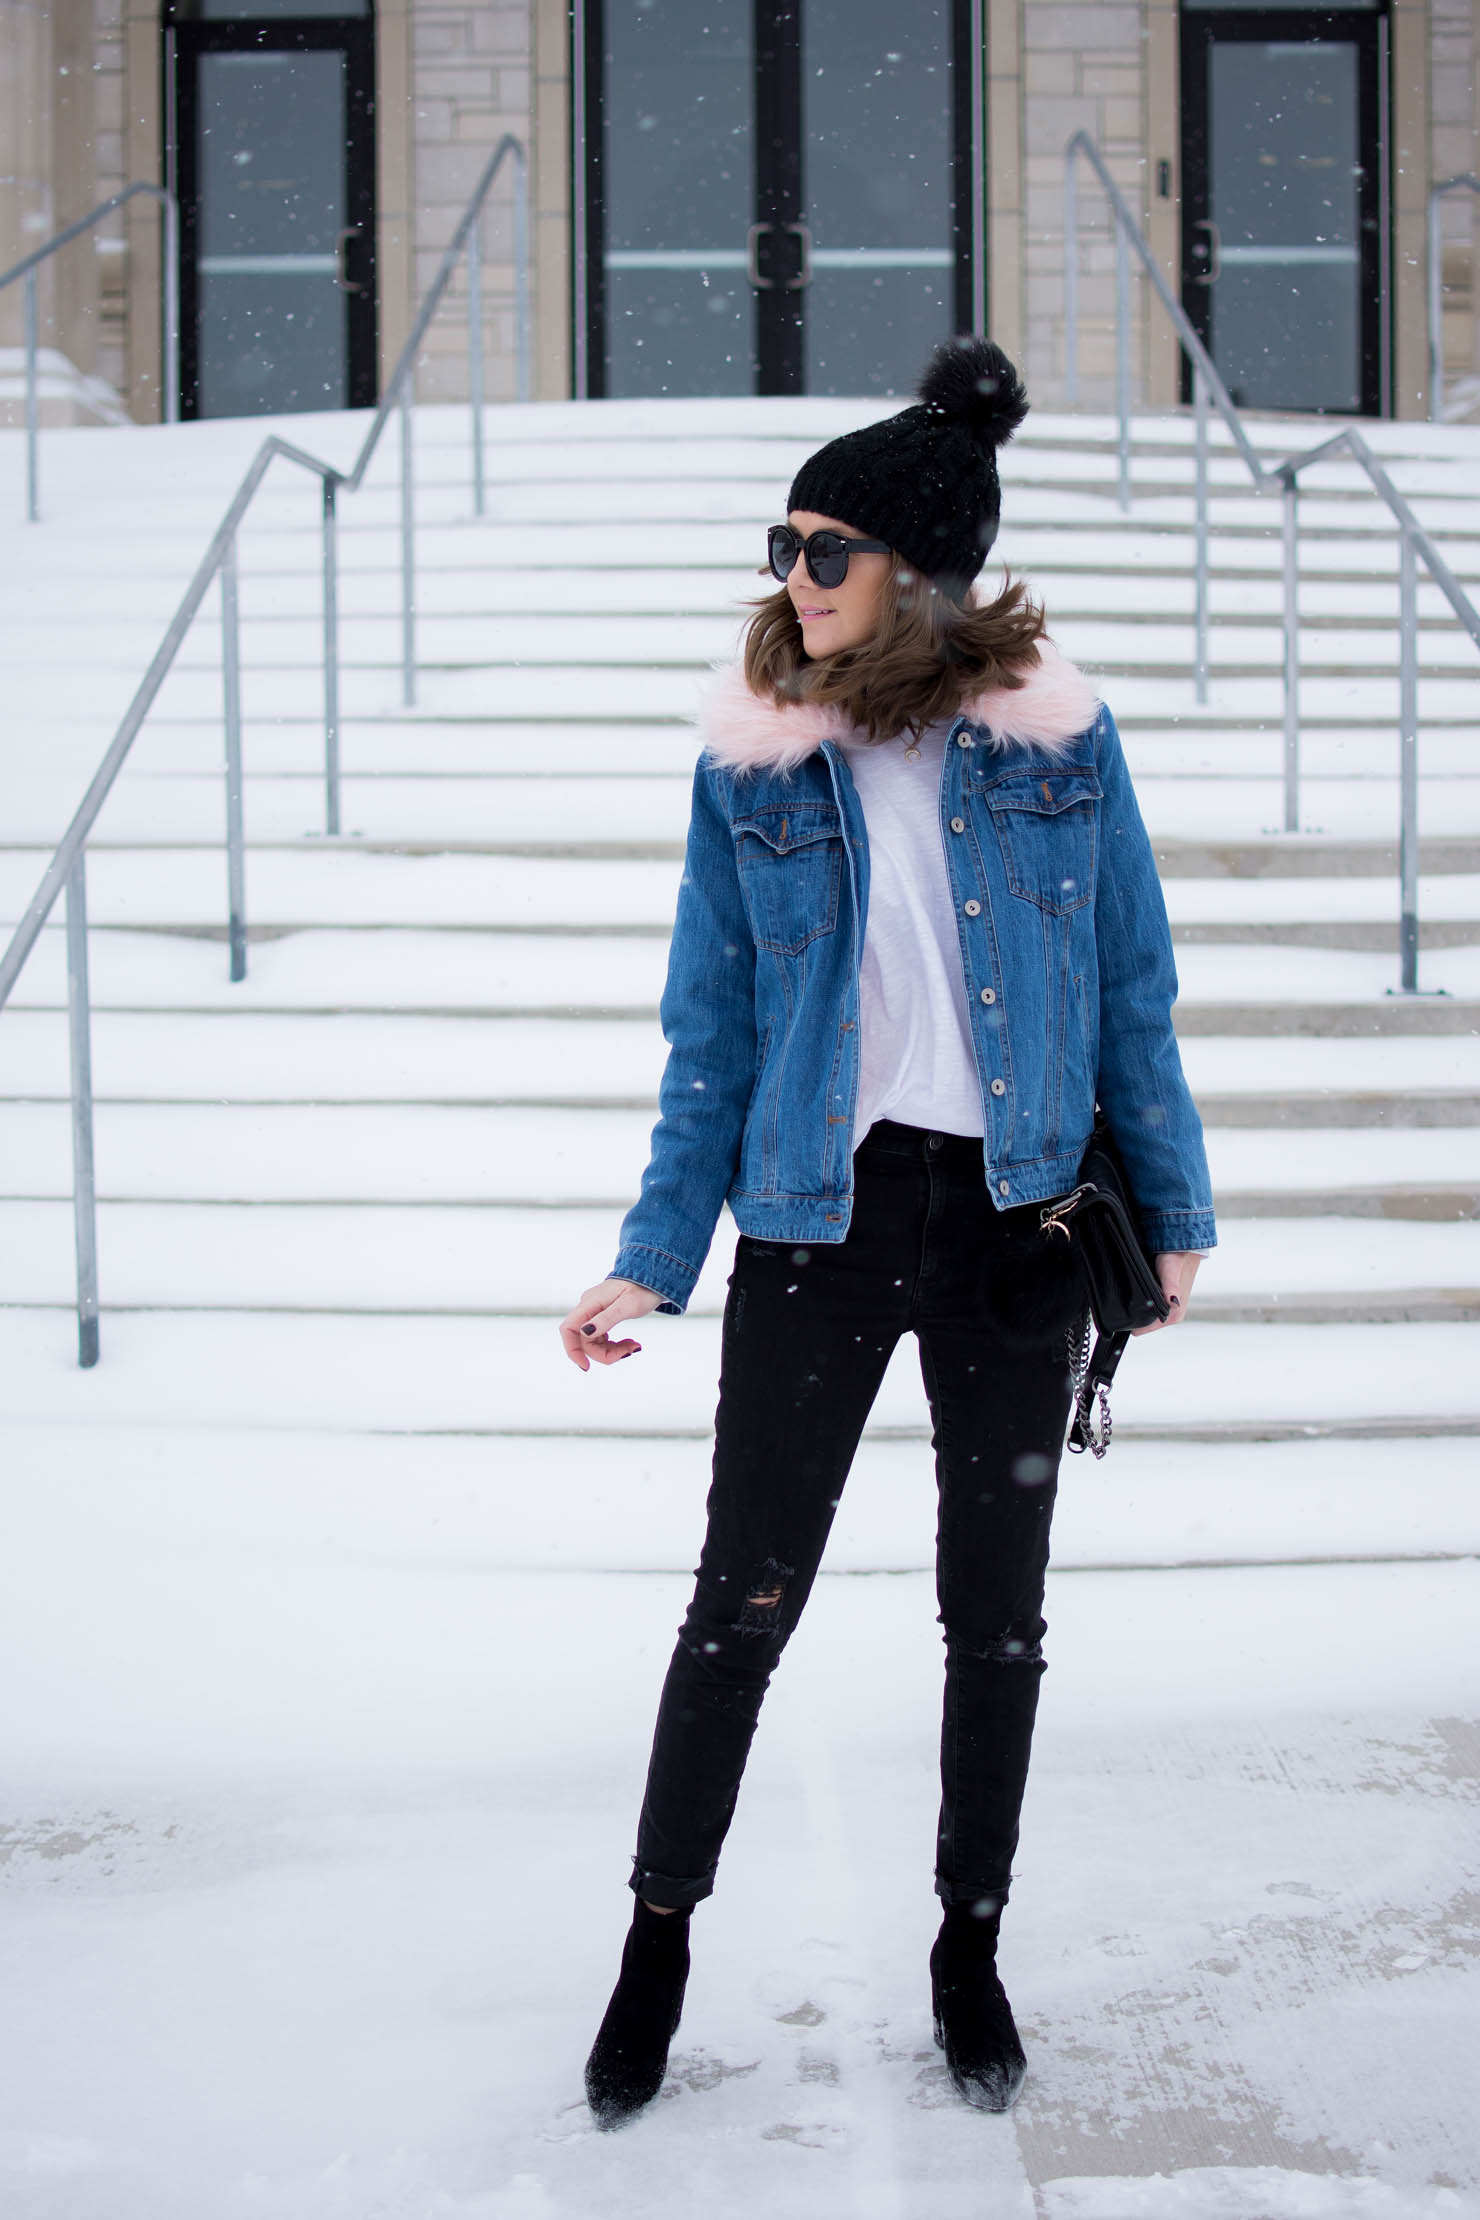 the fur lined denim jacket you need, a denim jacket for all seasons, updated denim jacket for winter, affordable fur trimmed denim jacket, easy and casual winter outfit idea